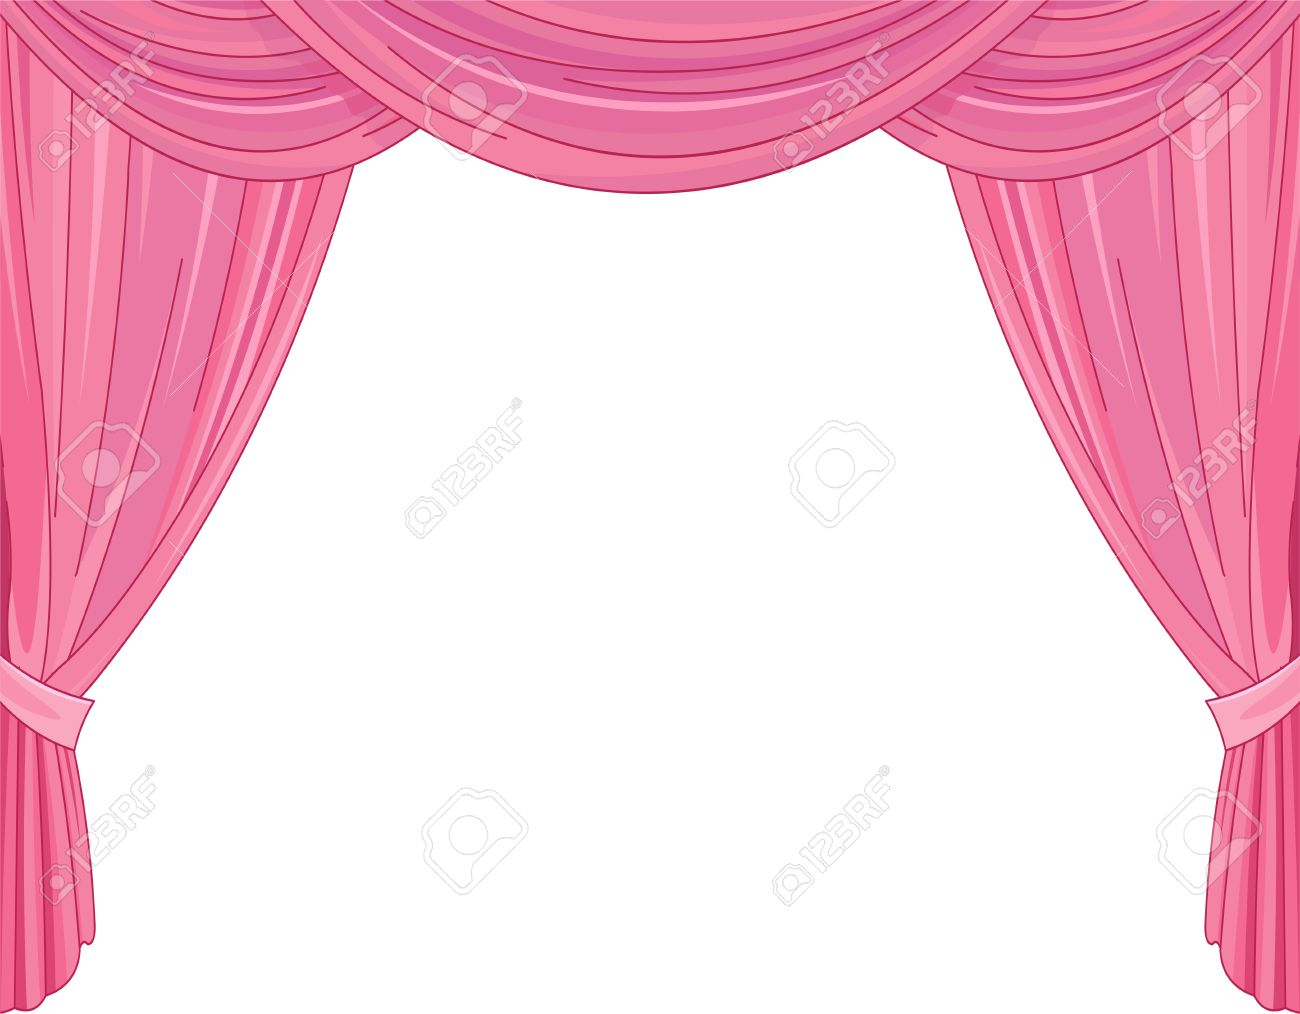 Royalty free or white curtain background drapes royalty free stock - Pink Curtains On A White Background Stock Vector 80789055